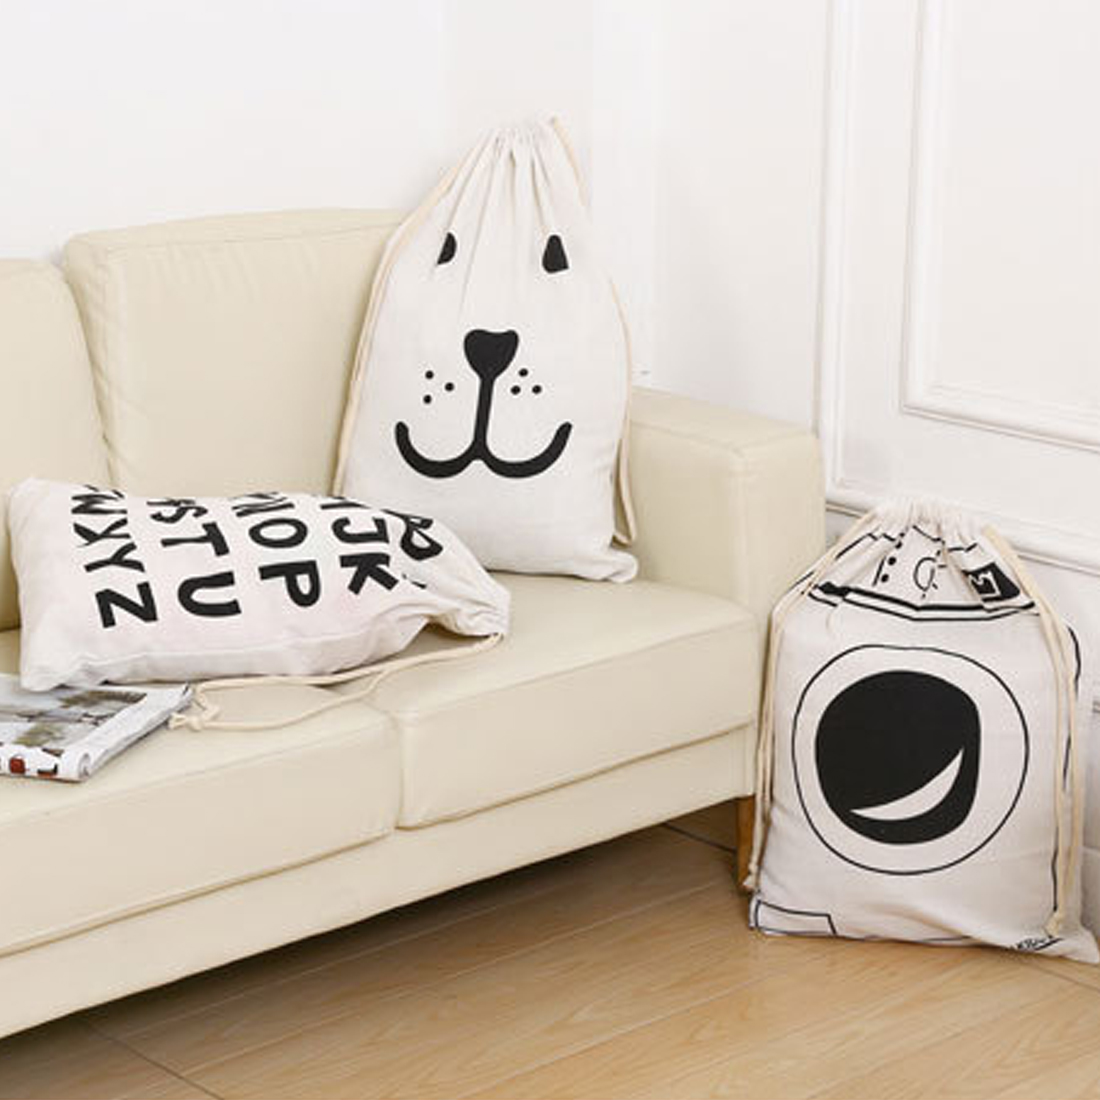 High sale Large Baby Toys Storage Bags Canvas Bear Laundry Hanging Drawstring Bag Household Pouch Bag Home Storage Organization